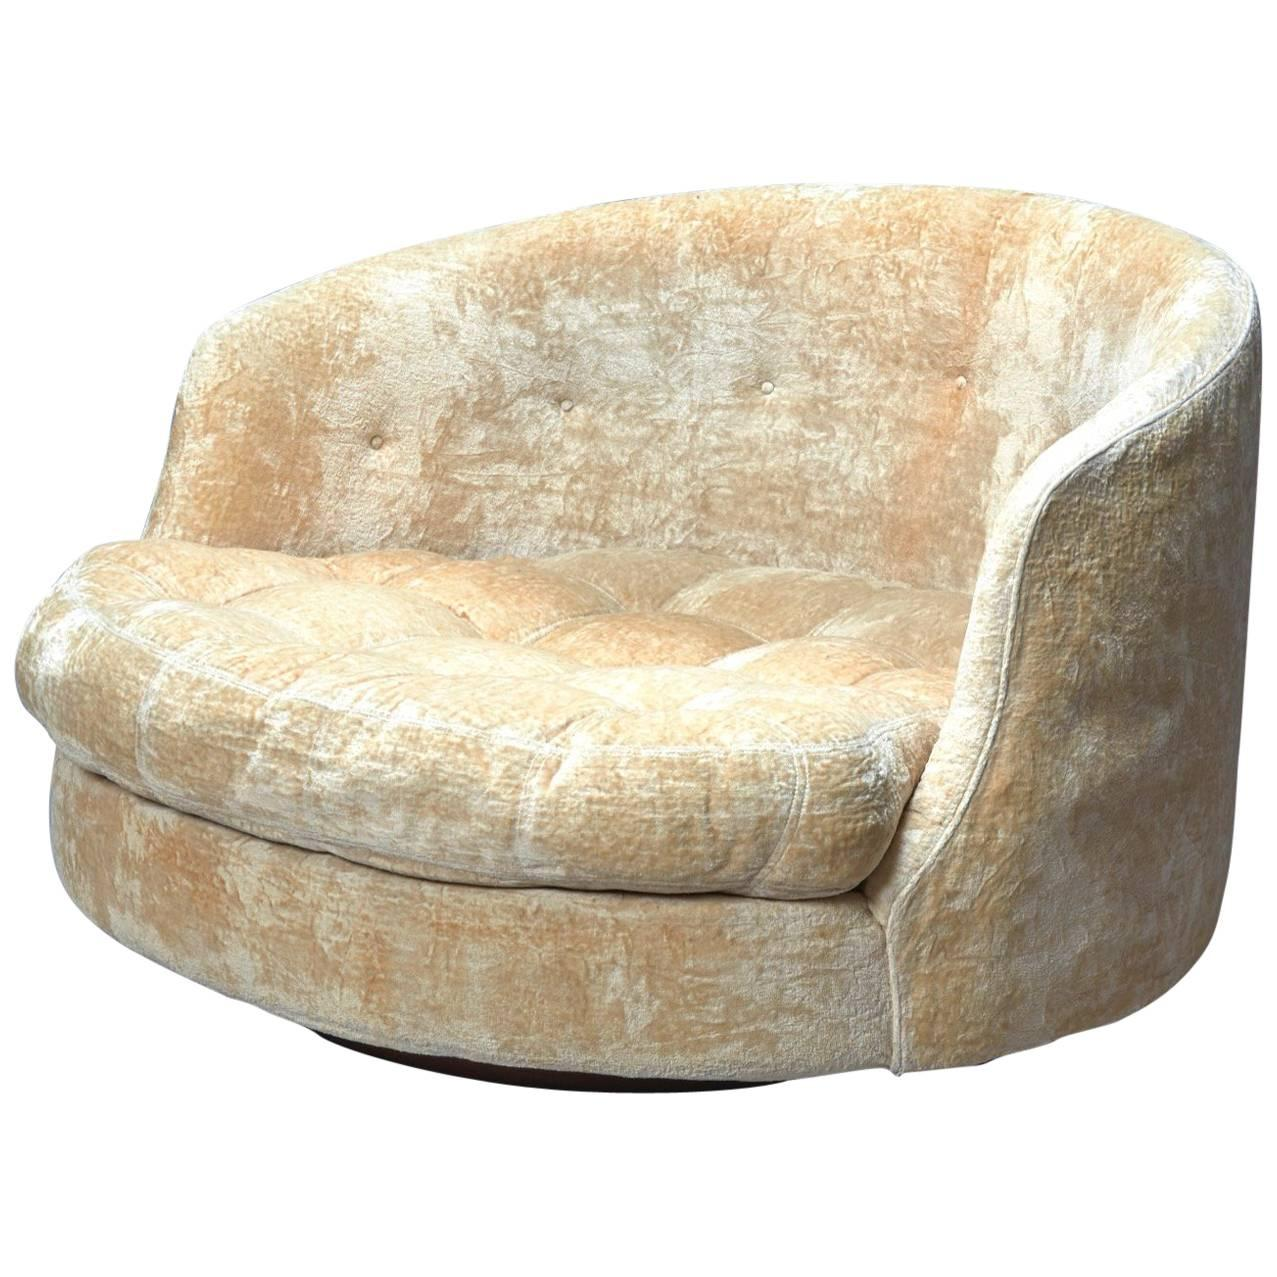 Large Round Swivel Lounge Chair By Milo Baughman For Thayer